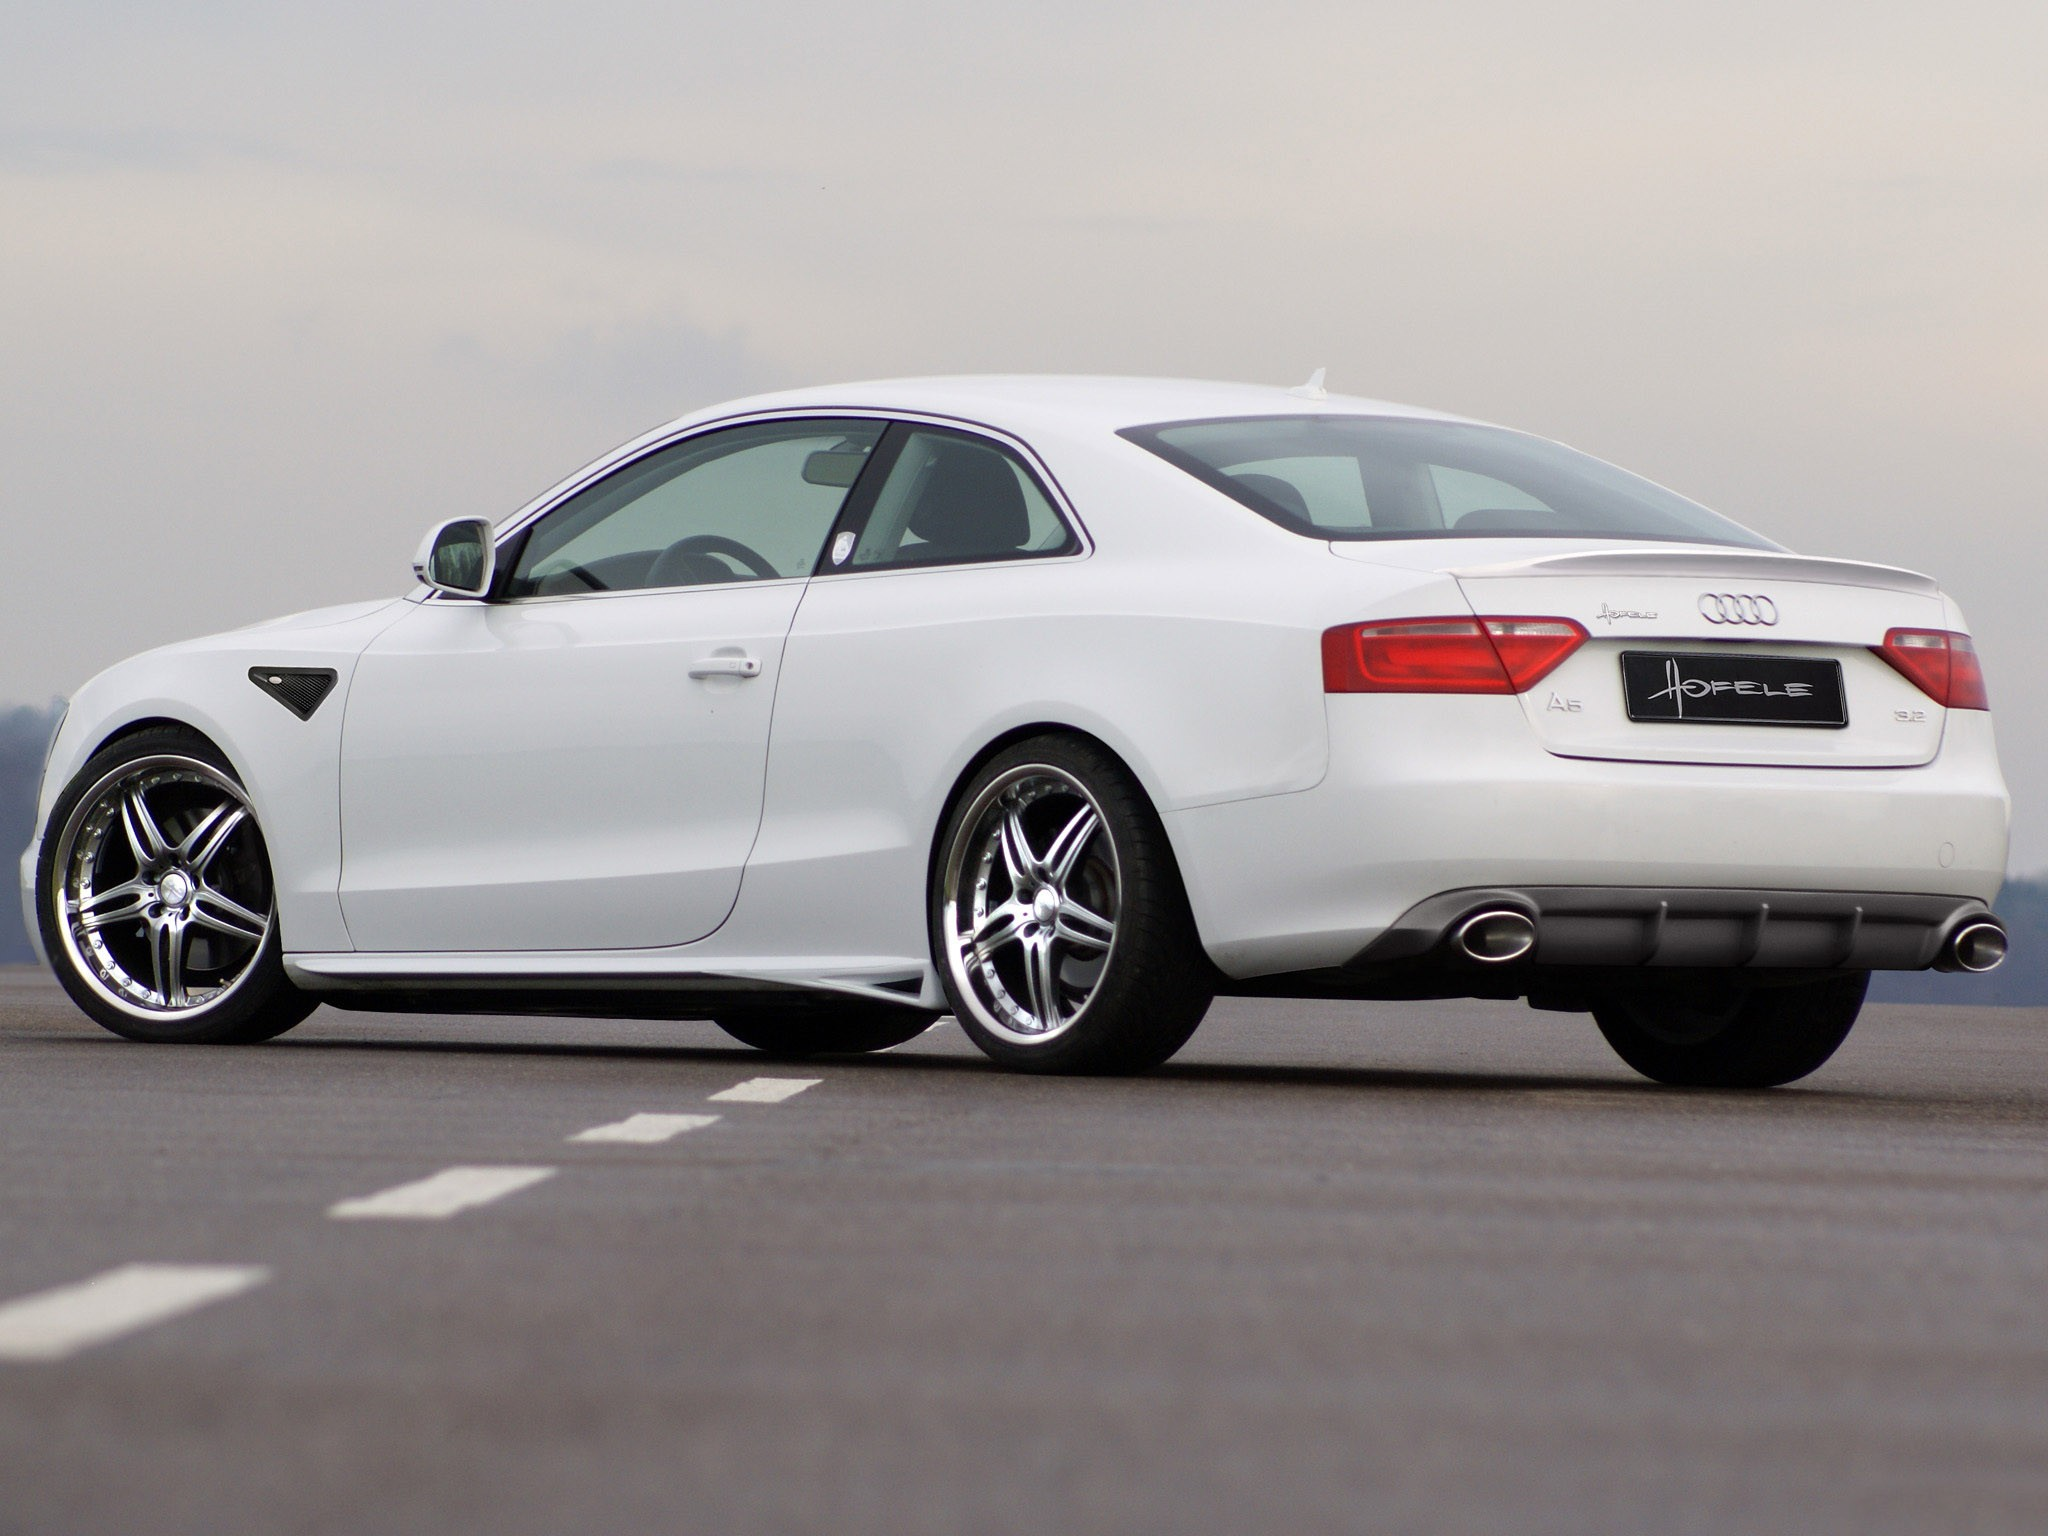 2007 Hofele Design - Audi A5 3.2 Coupe